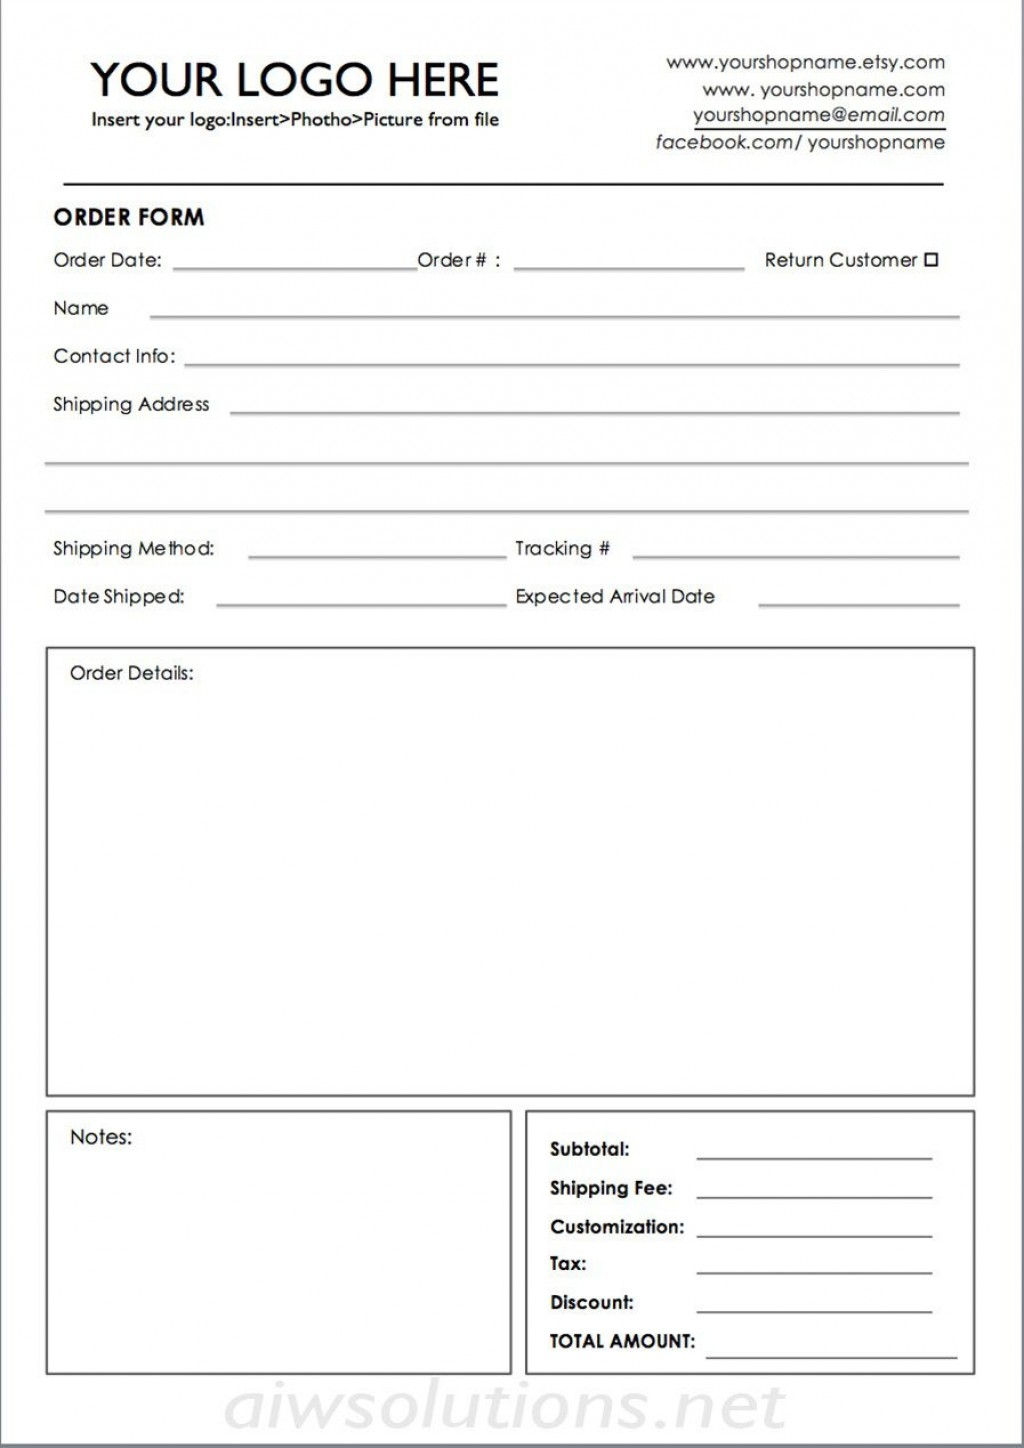 009 Unforgettable Custom Order Form Template Sample  Cake Clothing WorkLarge